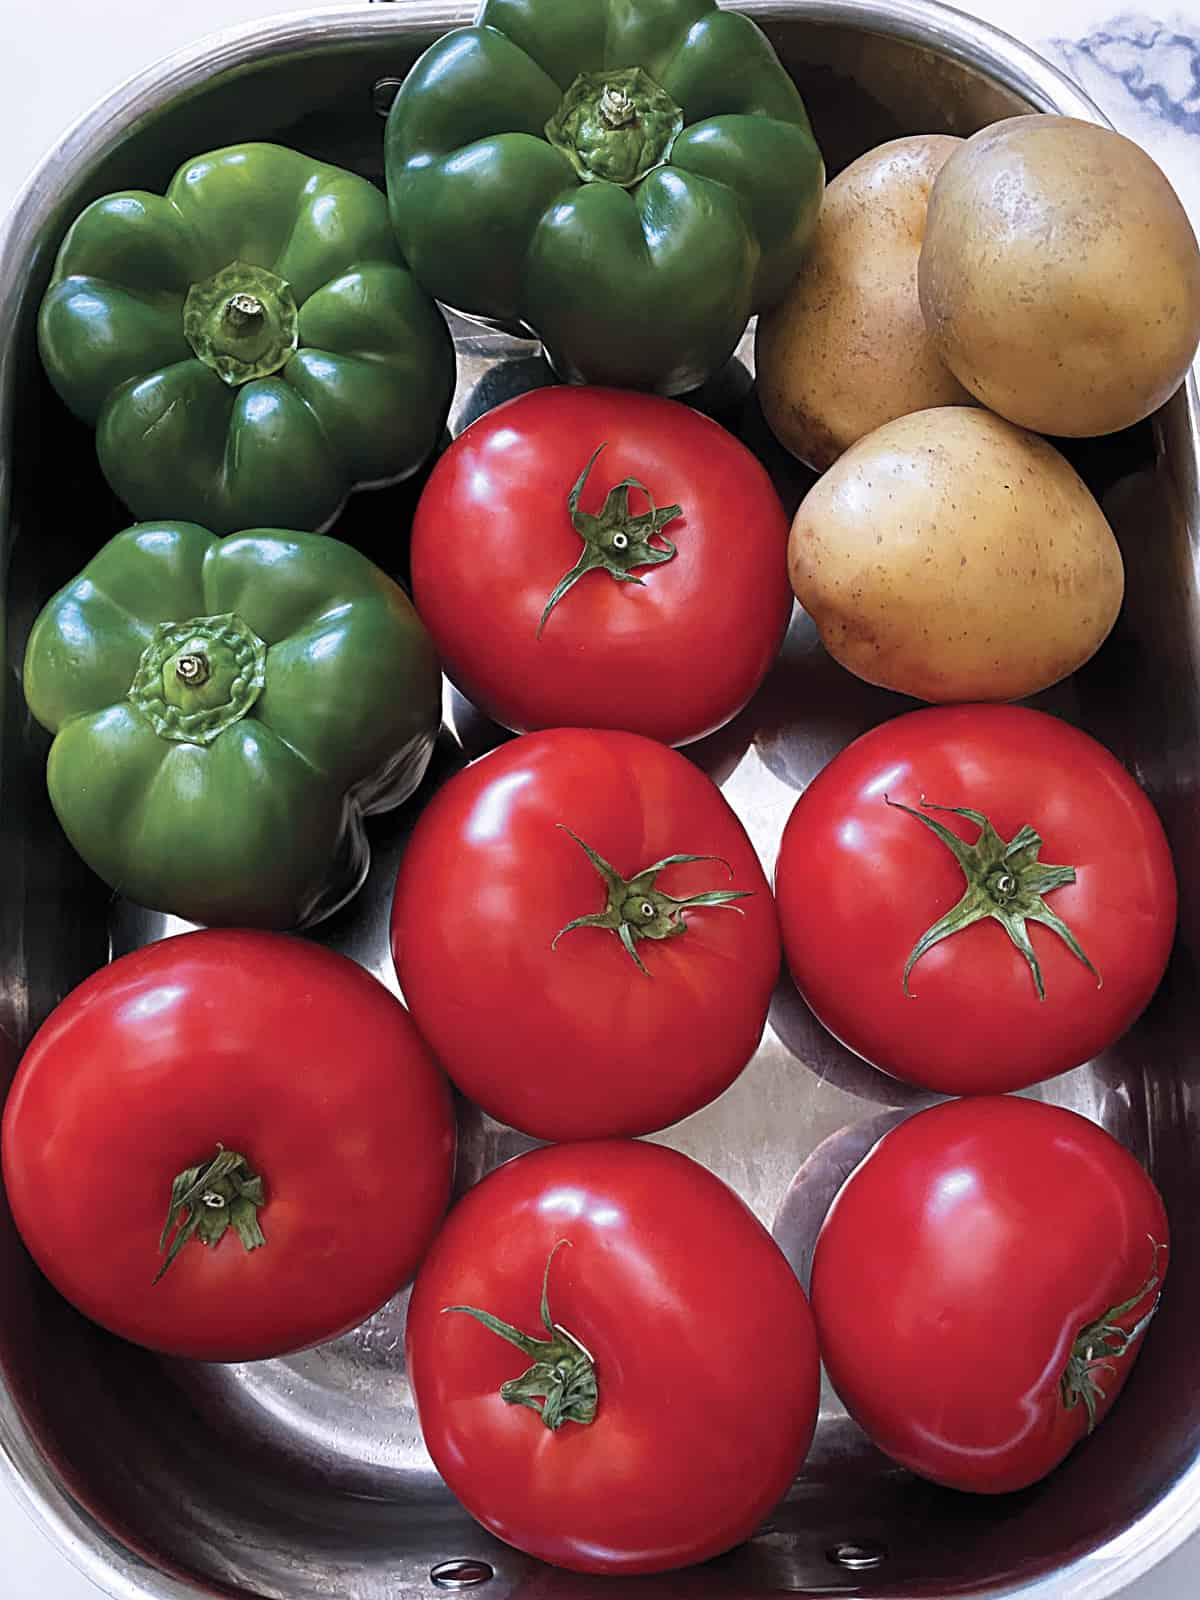 Tomatoes, green bell peppers and potatoes in a baking pan.